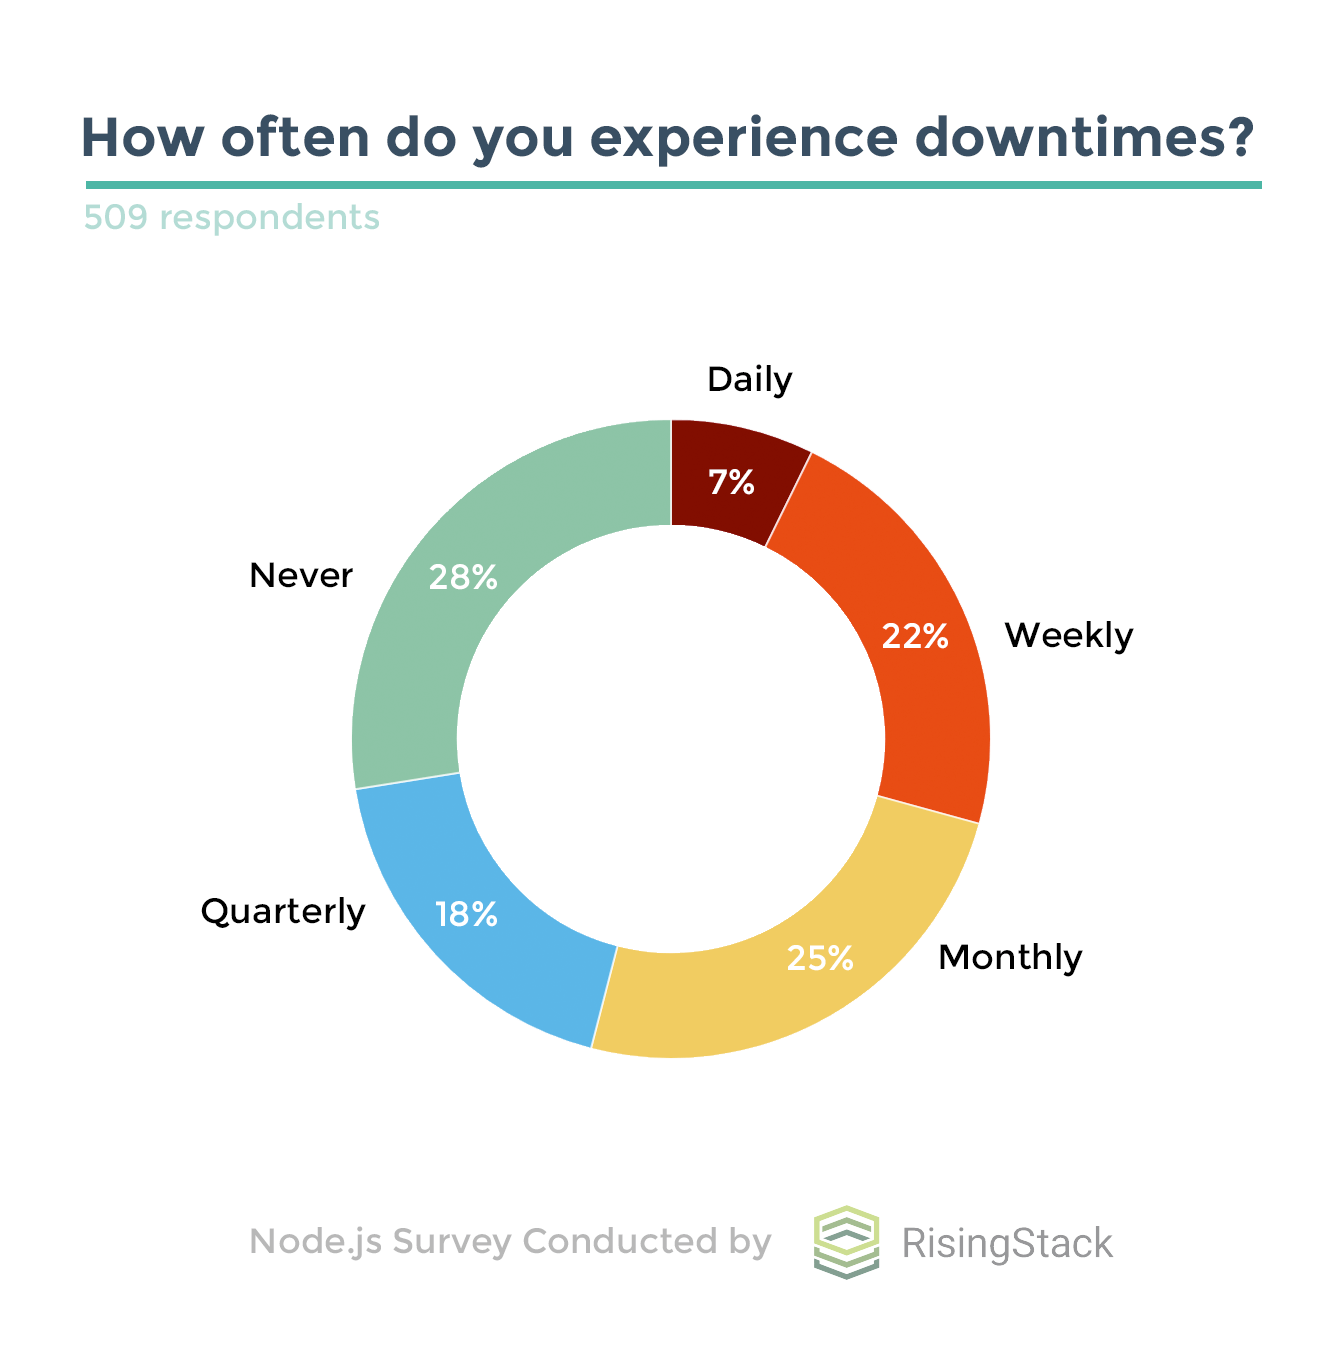 Node.js Survey by RisingStack - Downtimes